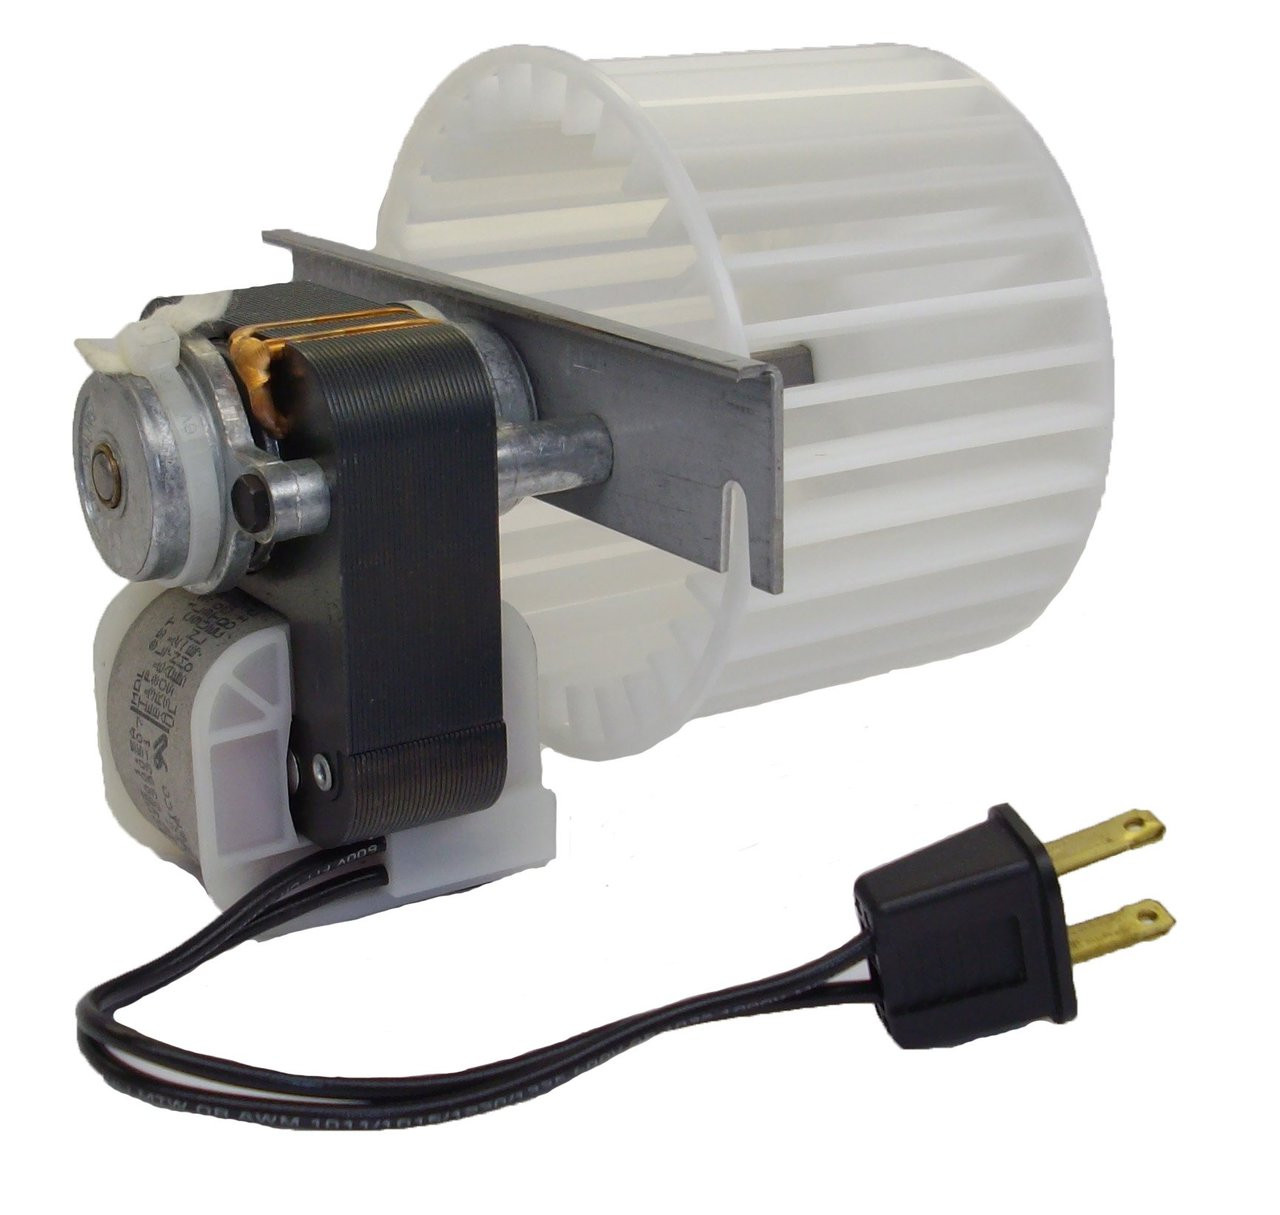 97005906__09780.1435075858.1280.1280?c=2 broan 162 a, 162 b vent fan motor 2650 rpm, 1 5 amp, 120v 97005906 nutone 665rp wiring diagram at reclaimingppi.co